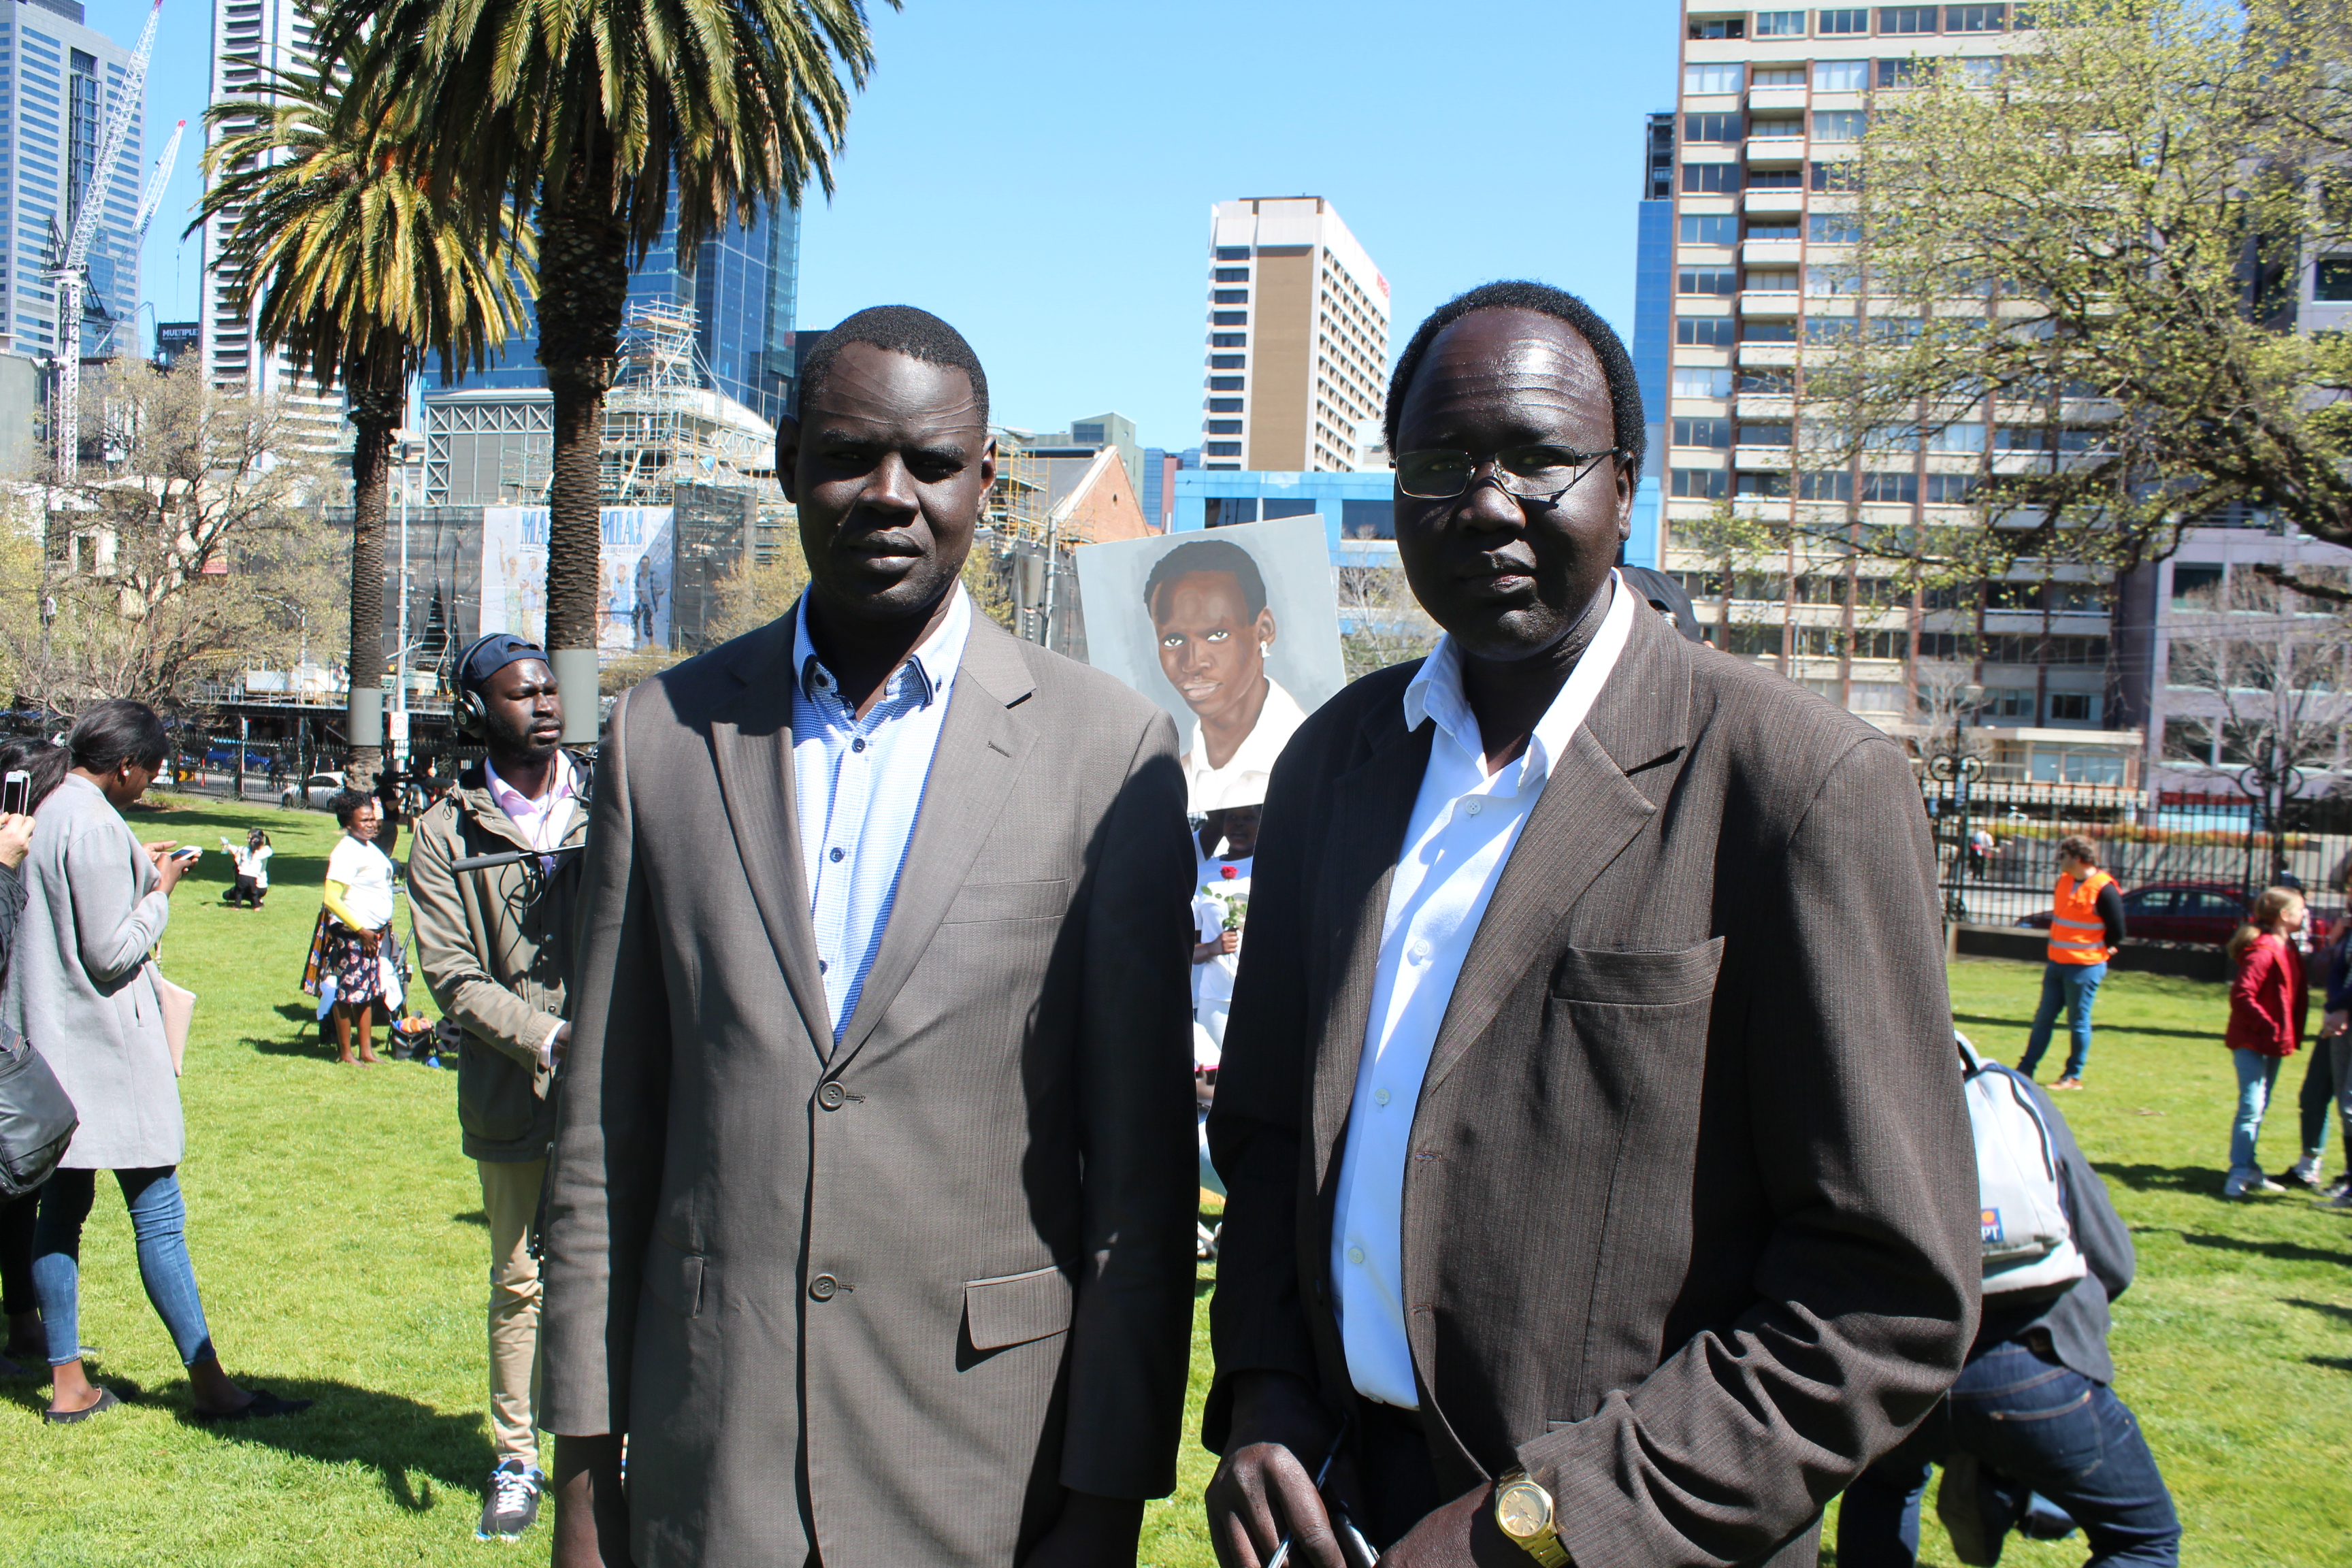 """""""We're here to support the family,"""" said Bol Machar, South Sudanese community leader, with Gatkuoth Chol, Pastor of Springvale Sudanese Group of Seventh-Day Adventist Church."""